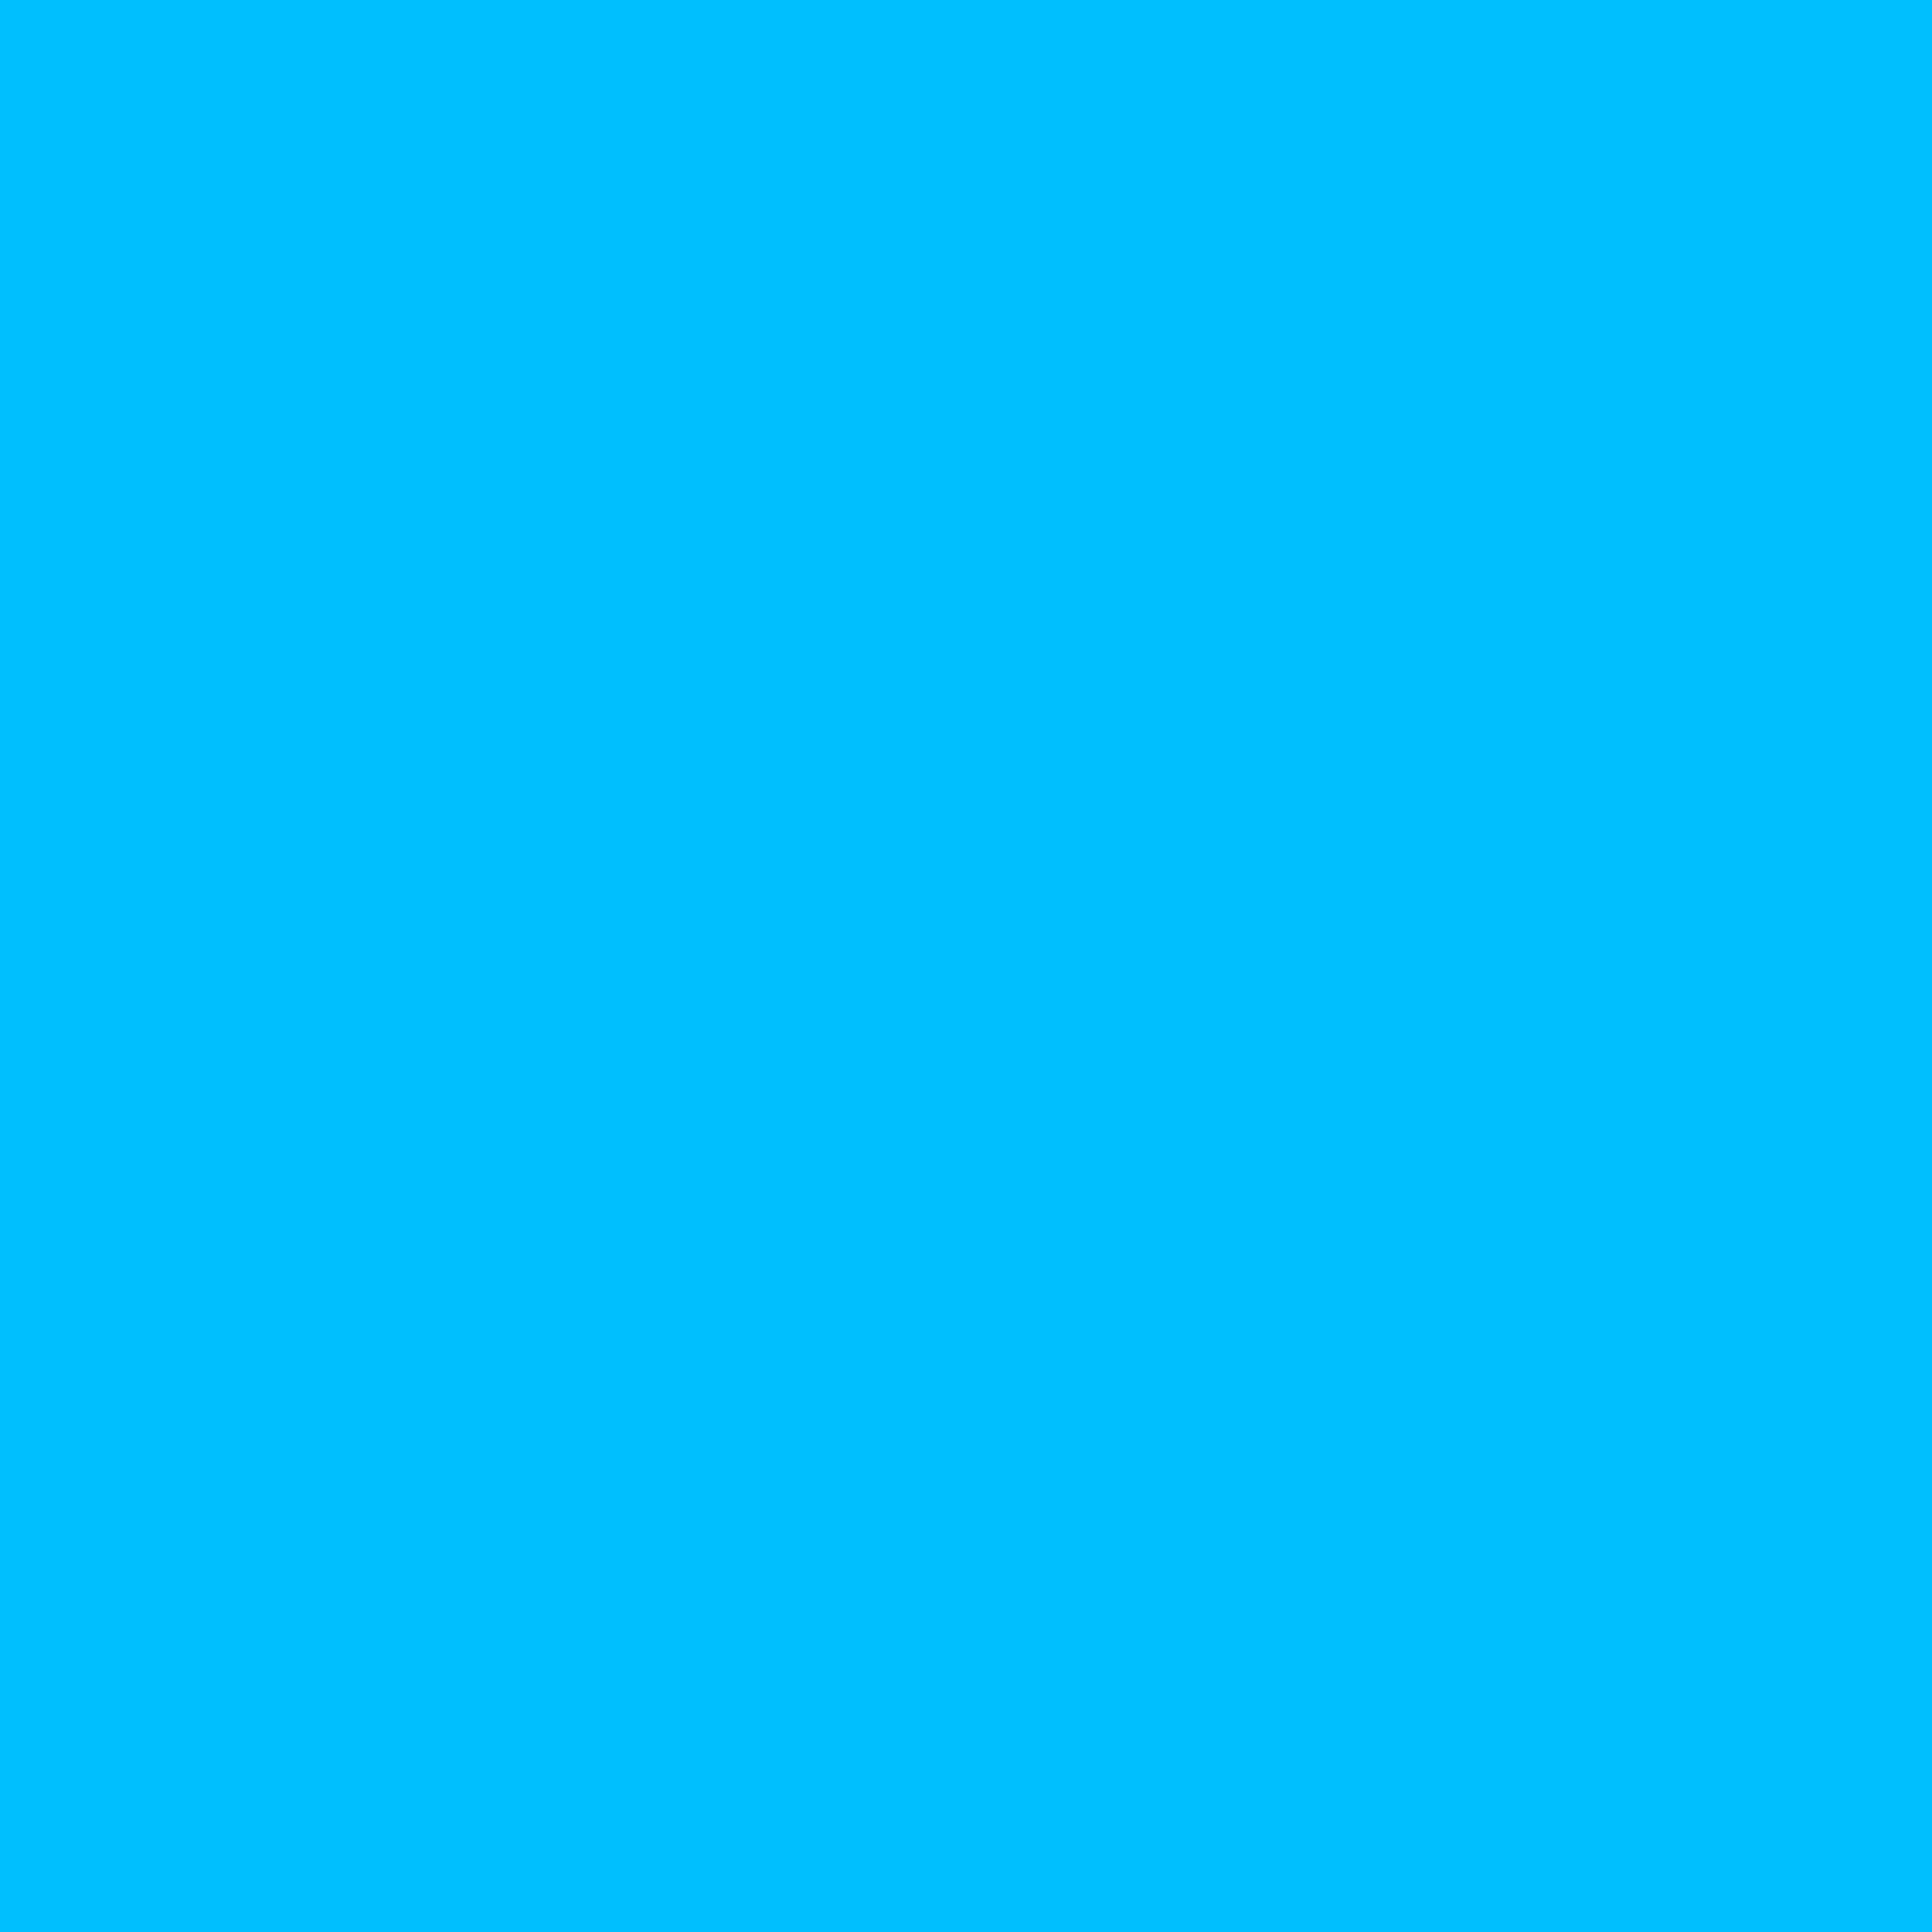 2048x2048 Deep Sky Blue Solid Color Background